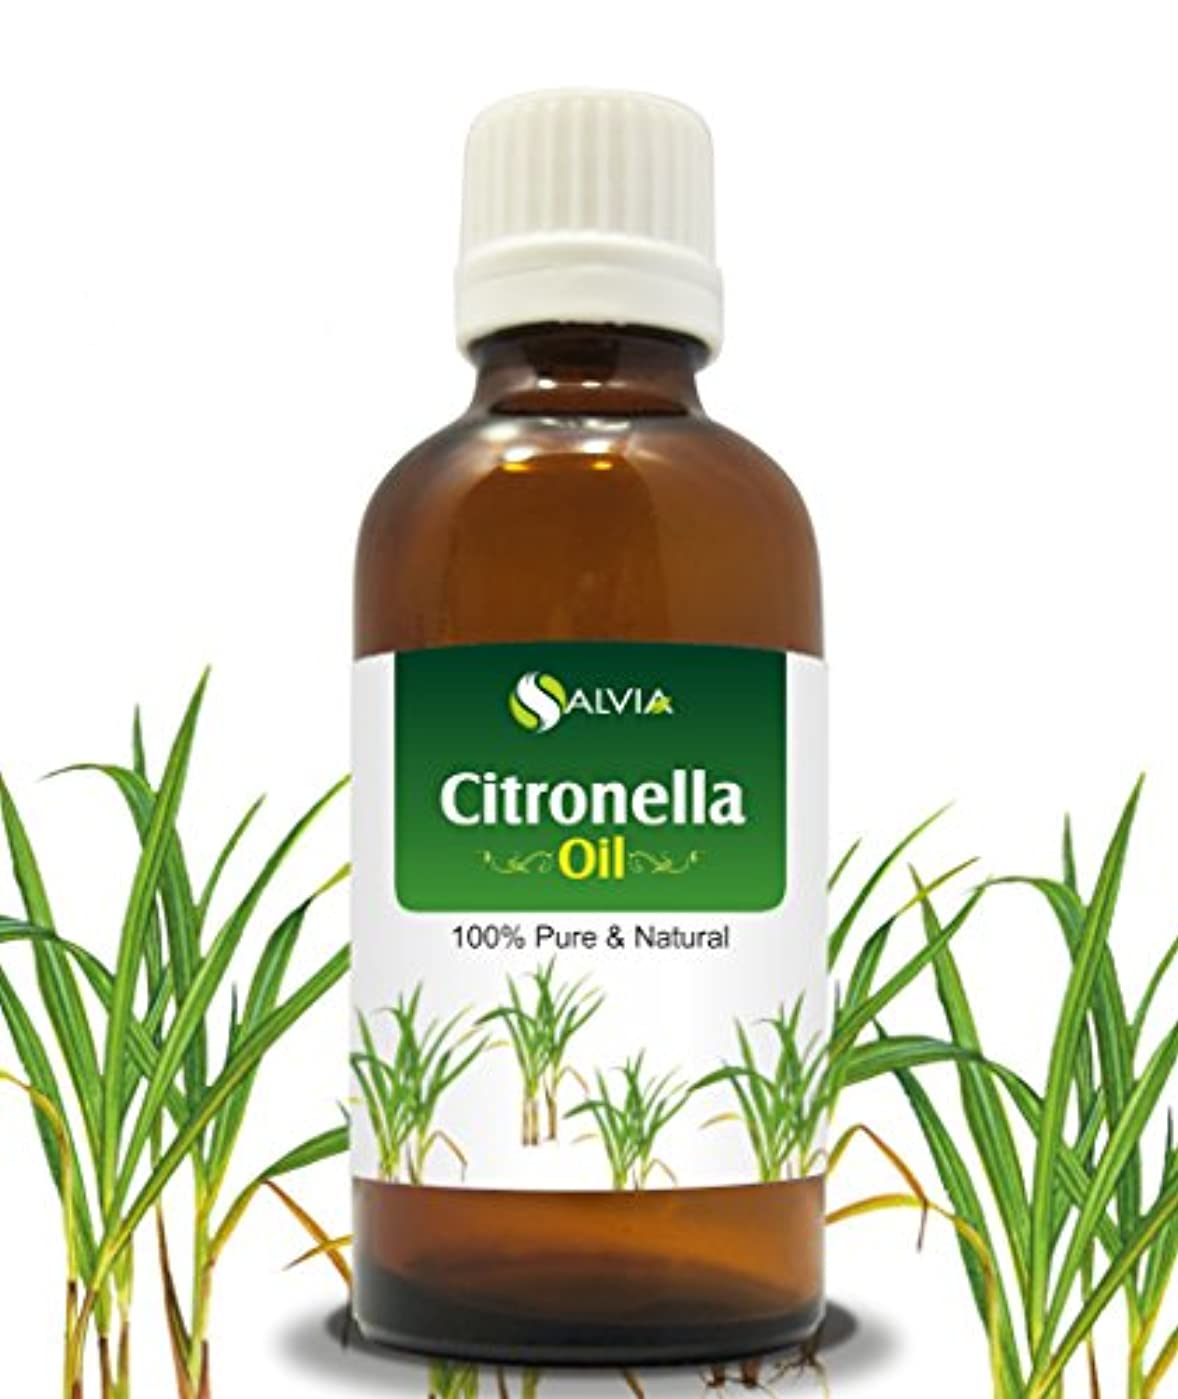 ベルベットチャレンジ理解するCITRONELLA OIL 100% NATURAL PURE UNDILUTED UNCUT ESSENTIAL OIL 15ML